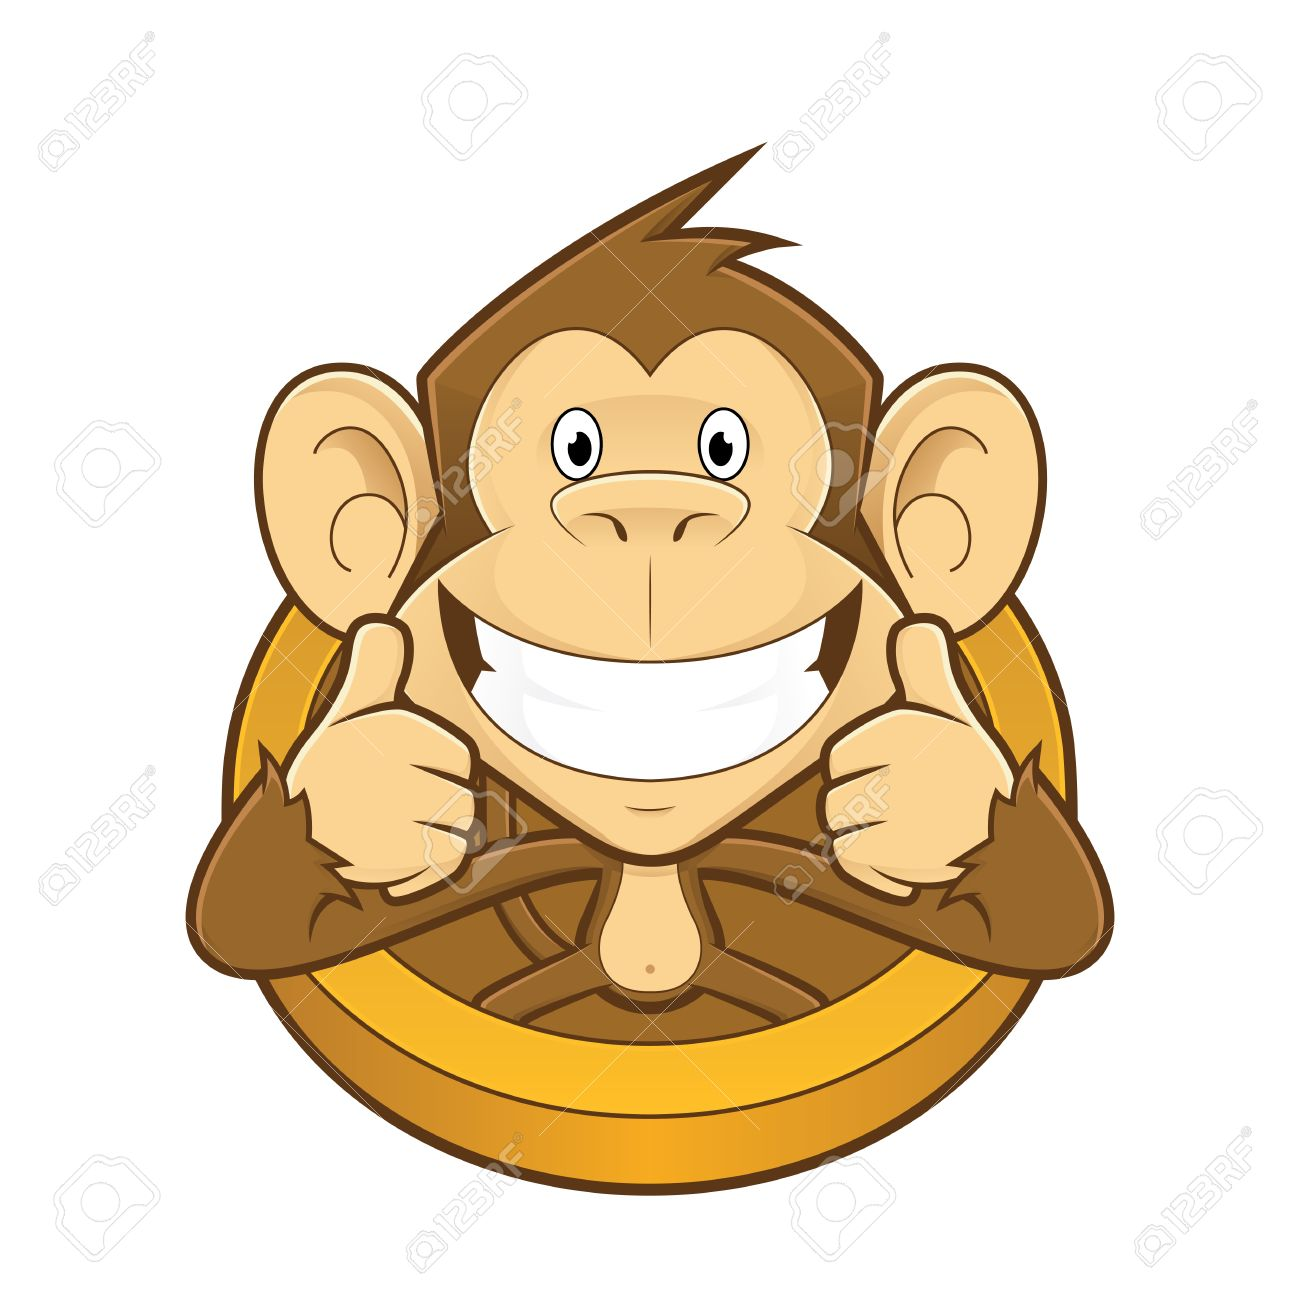 monkey giving two thumbs up royalty free cliparts vectors and rh 123rf com clipart + 2 thumbs up clipart + 2 thumbs up